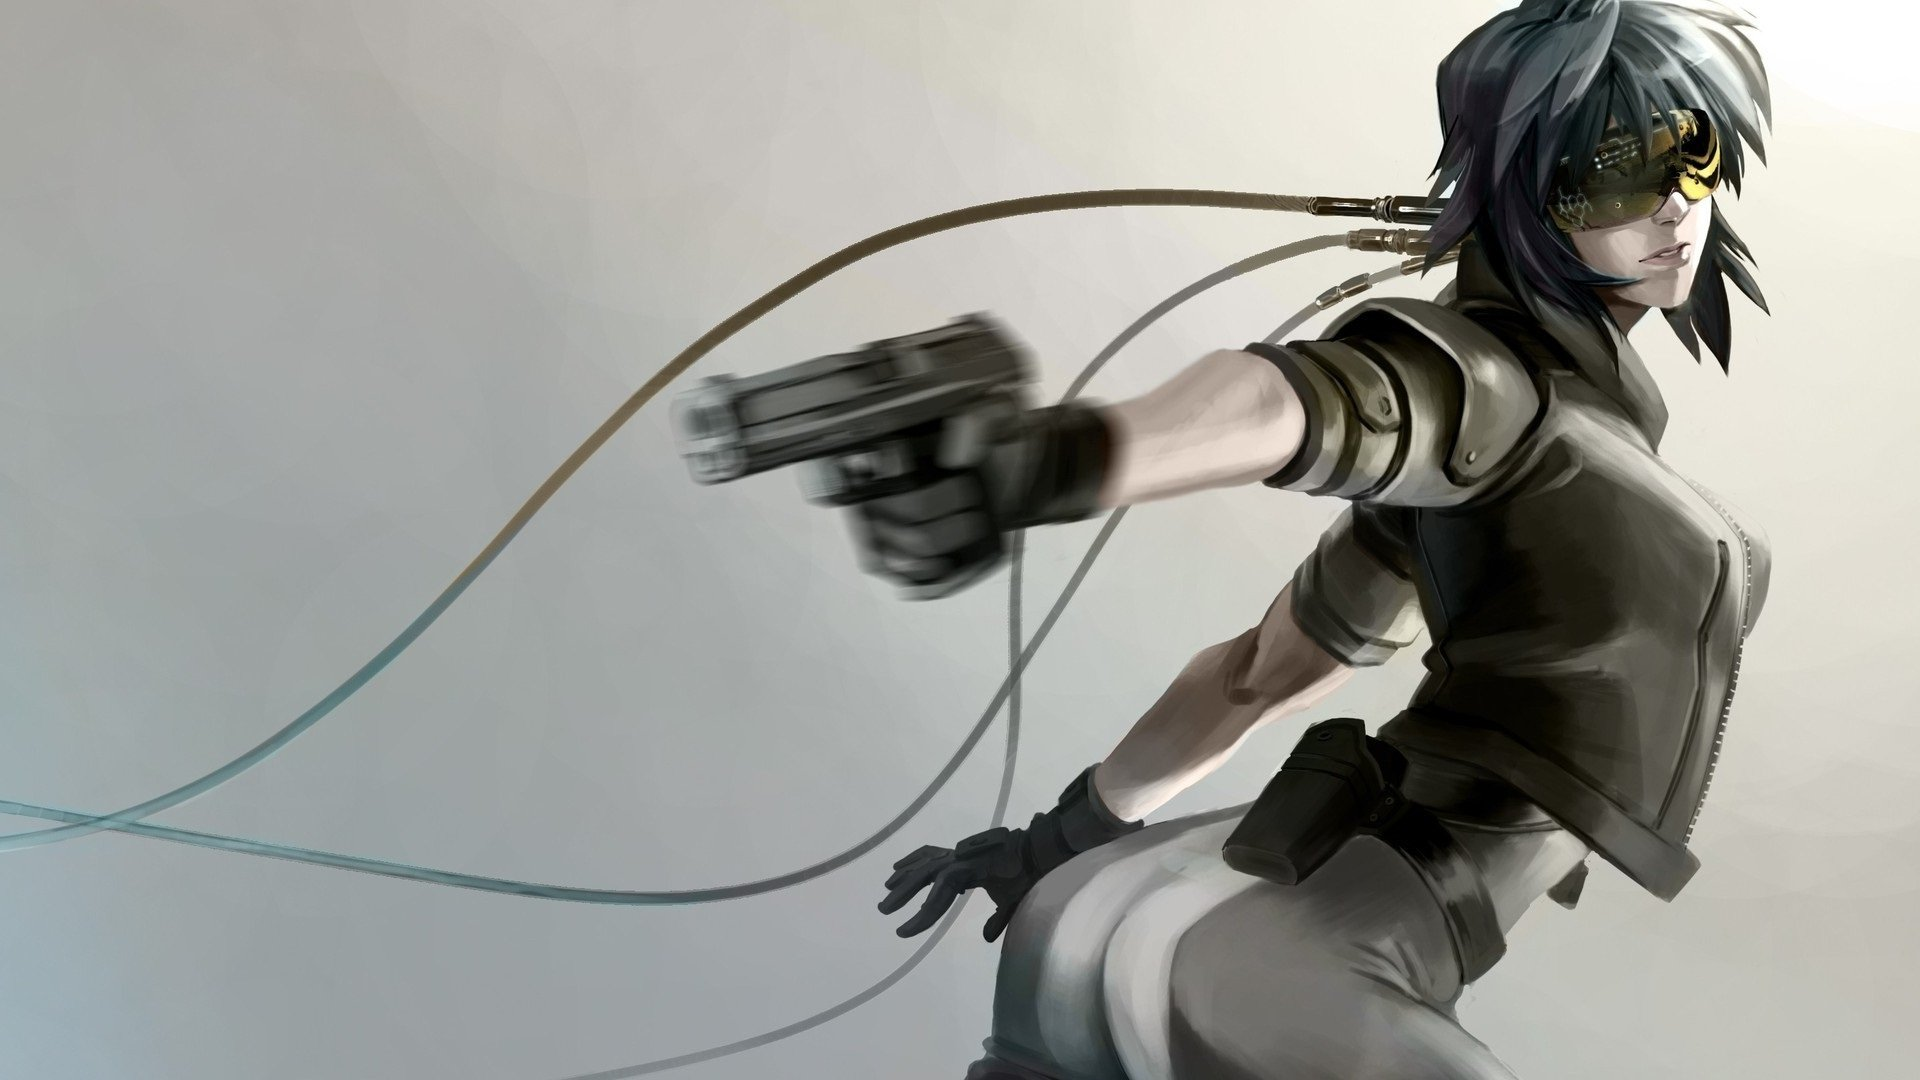 Free Ghost In The Shell high quality wallpaper ID:442079 for full hd desktop